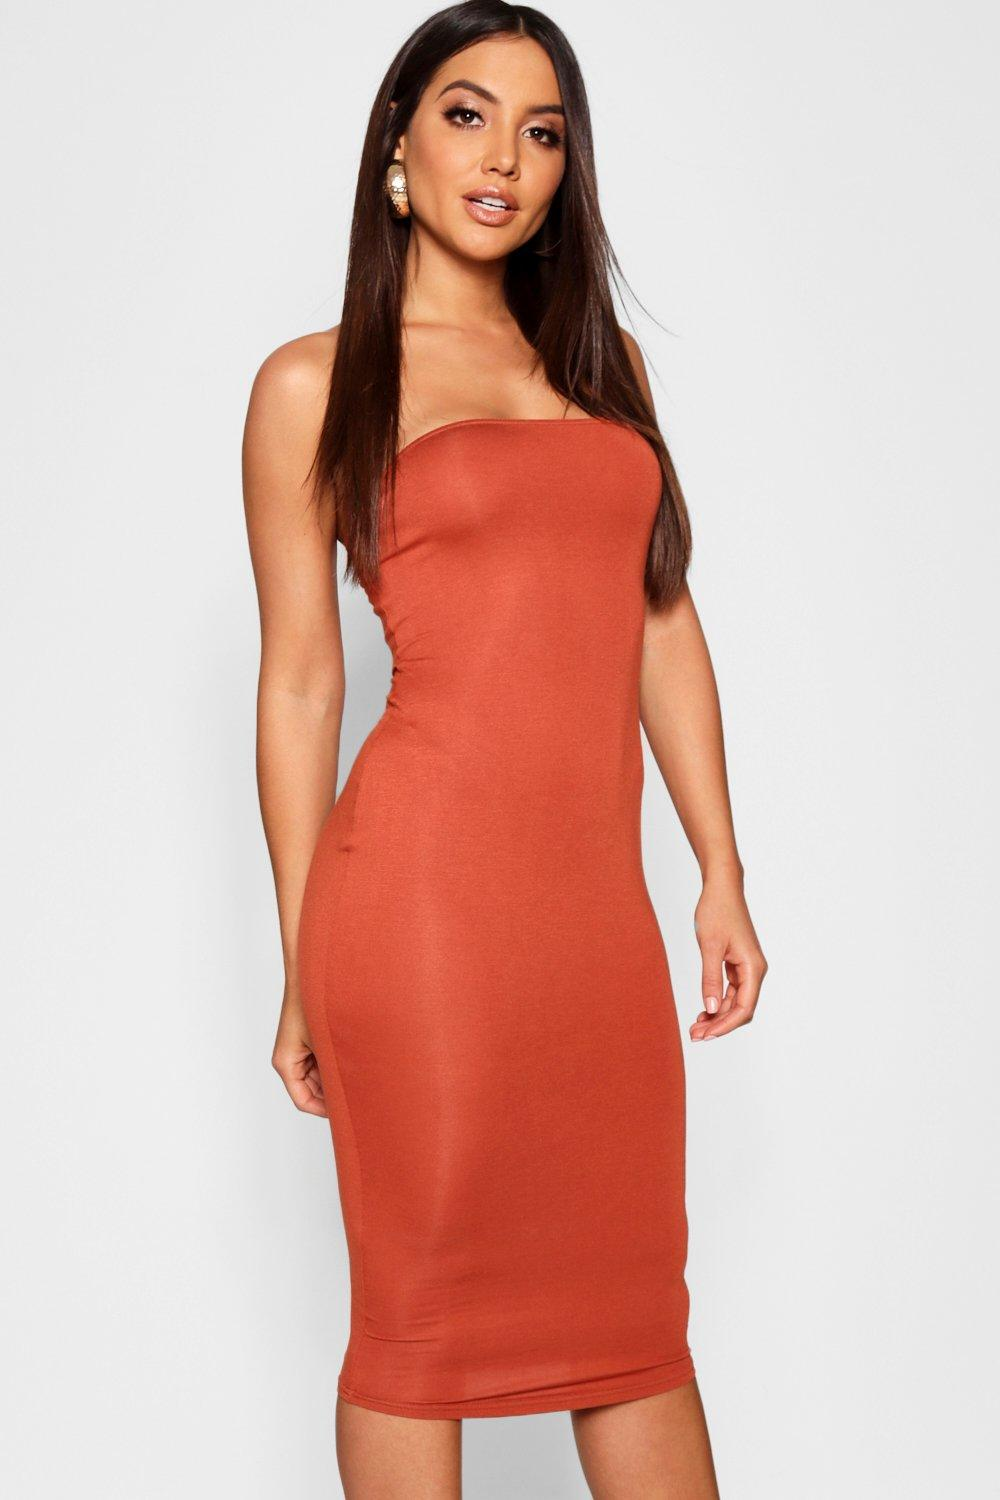 57713e5e0e Boohoo Womens Bandeau Bodycon Midi Dress | eBay